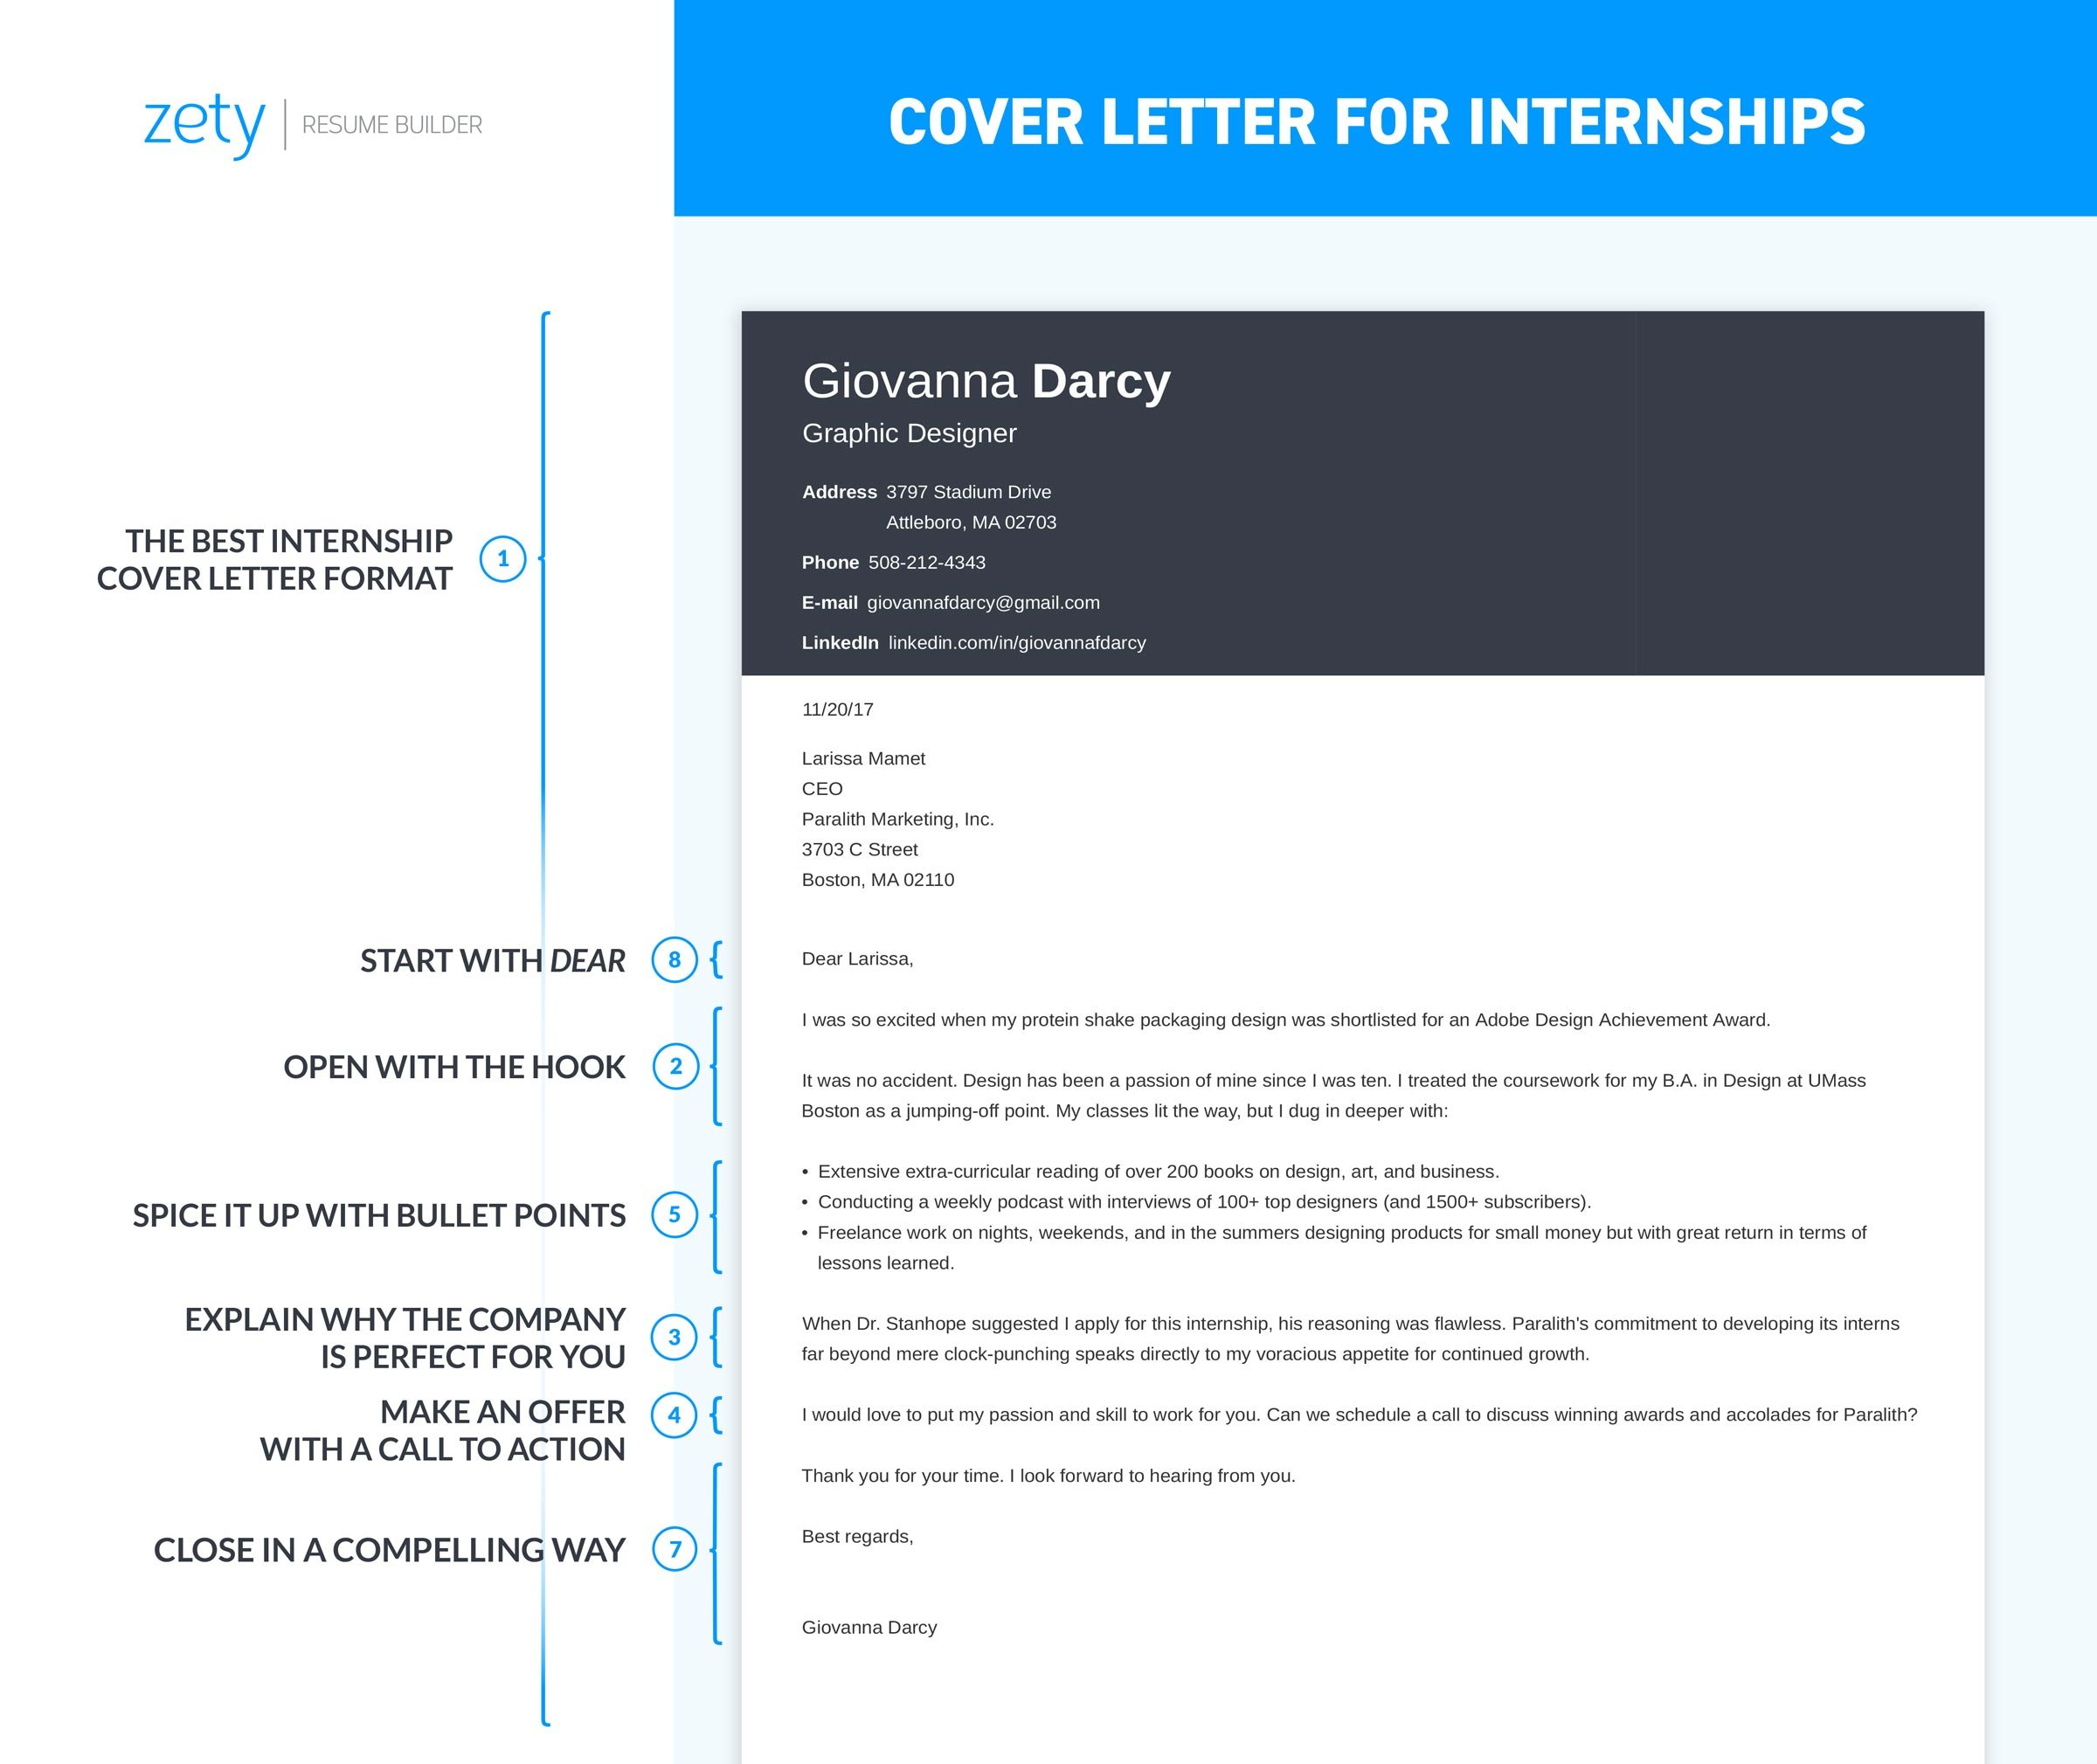 how to write a cover letter for an internship [+20 examples]